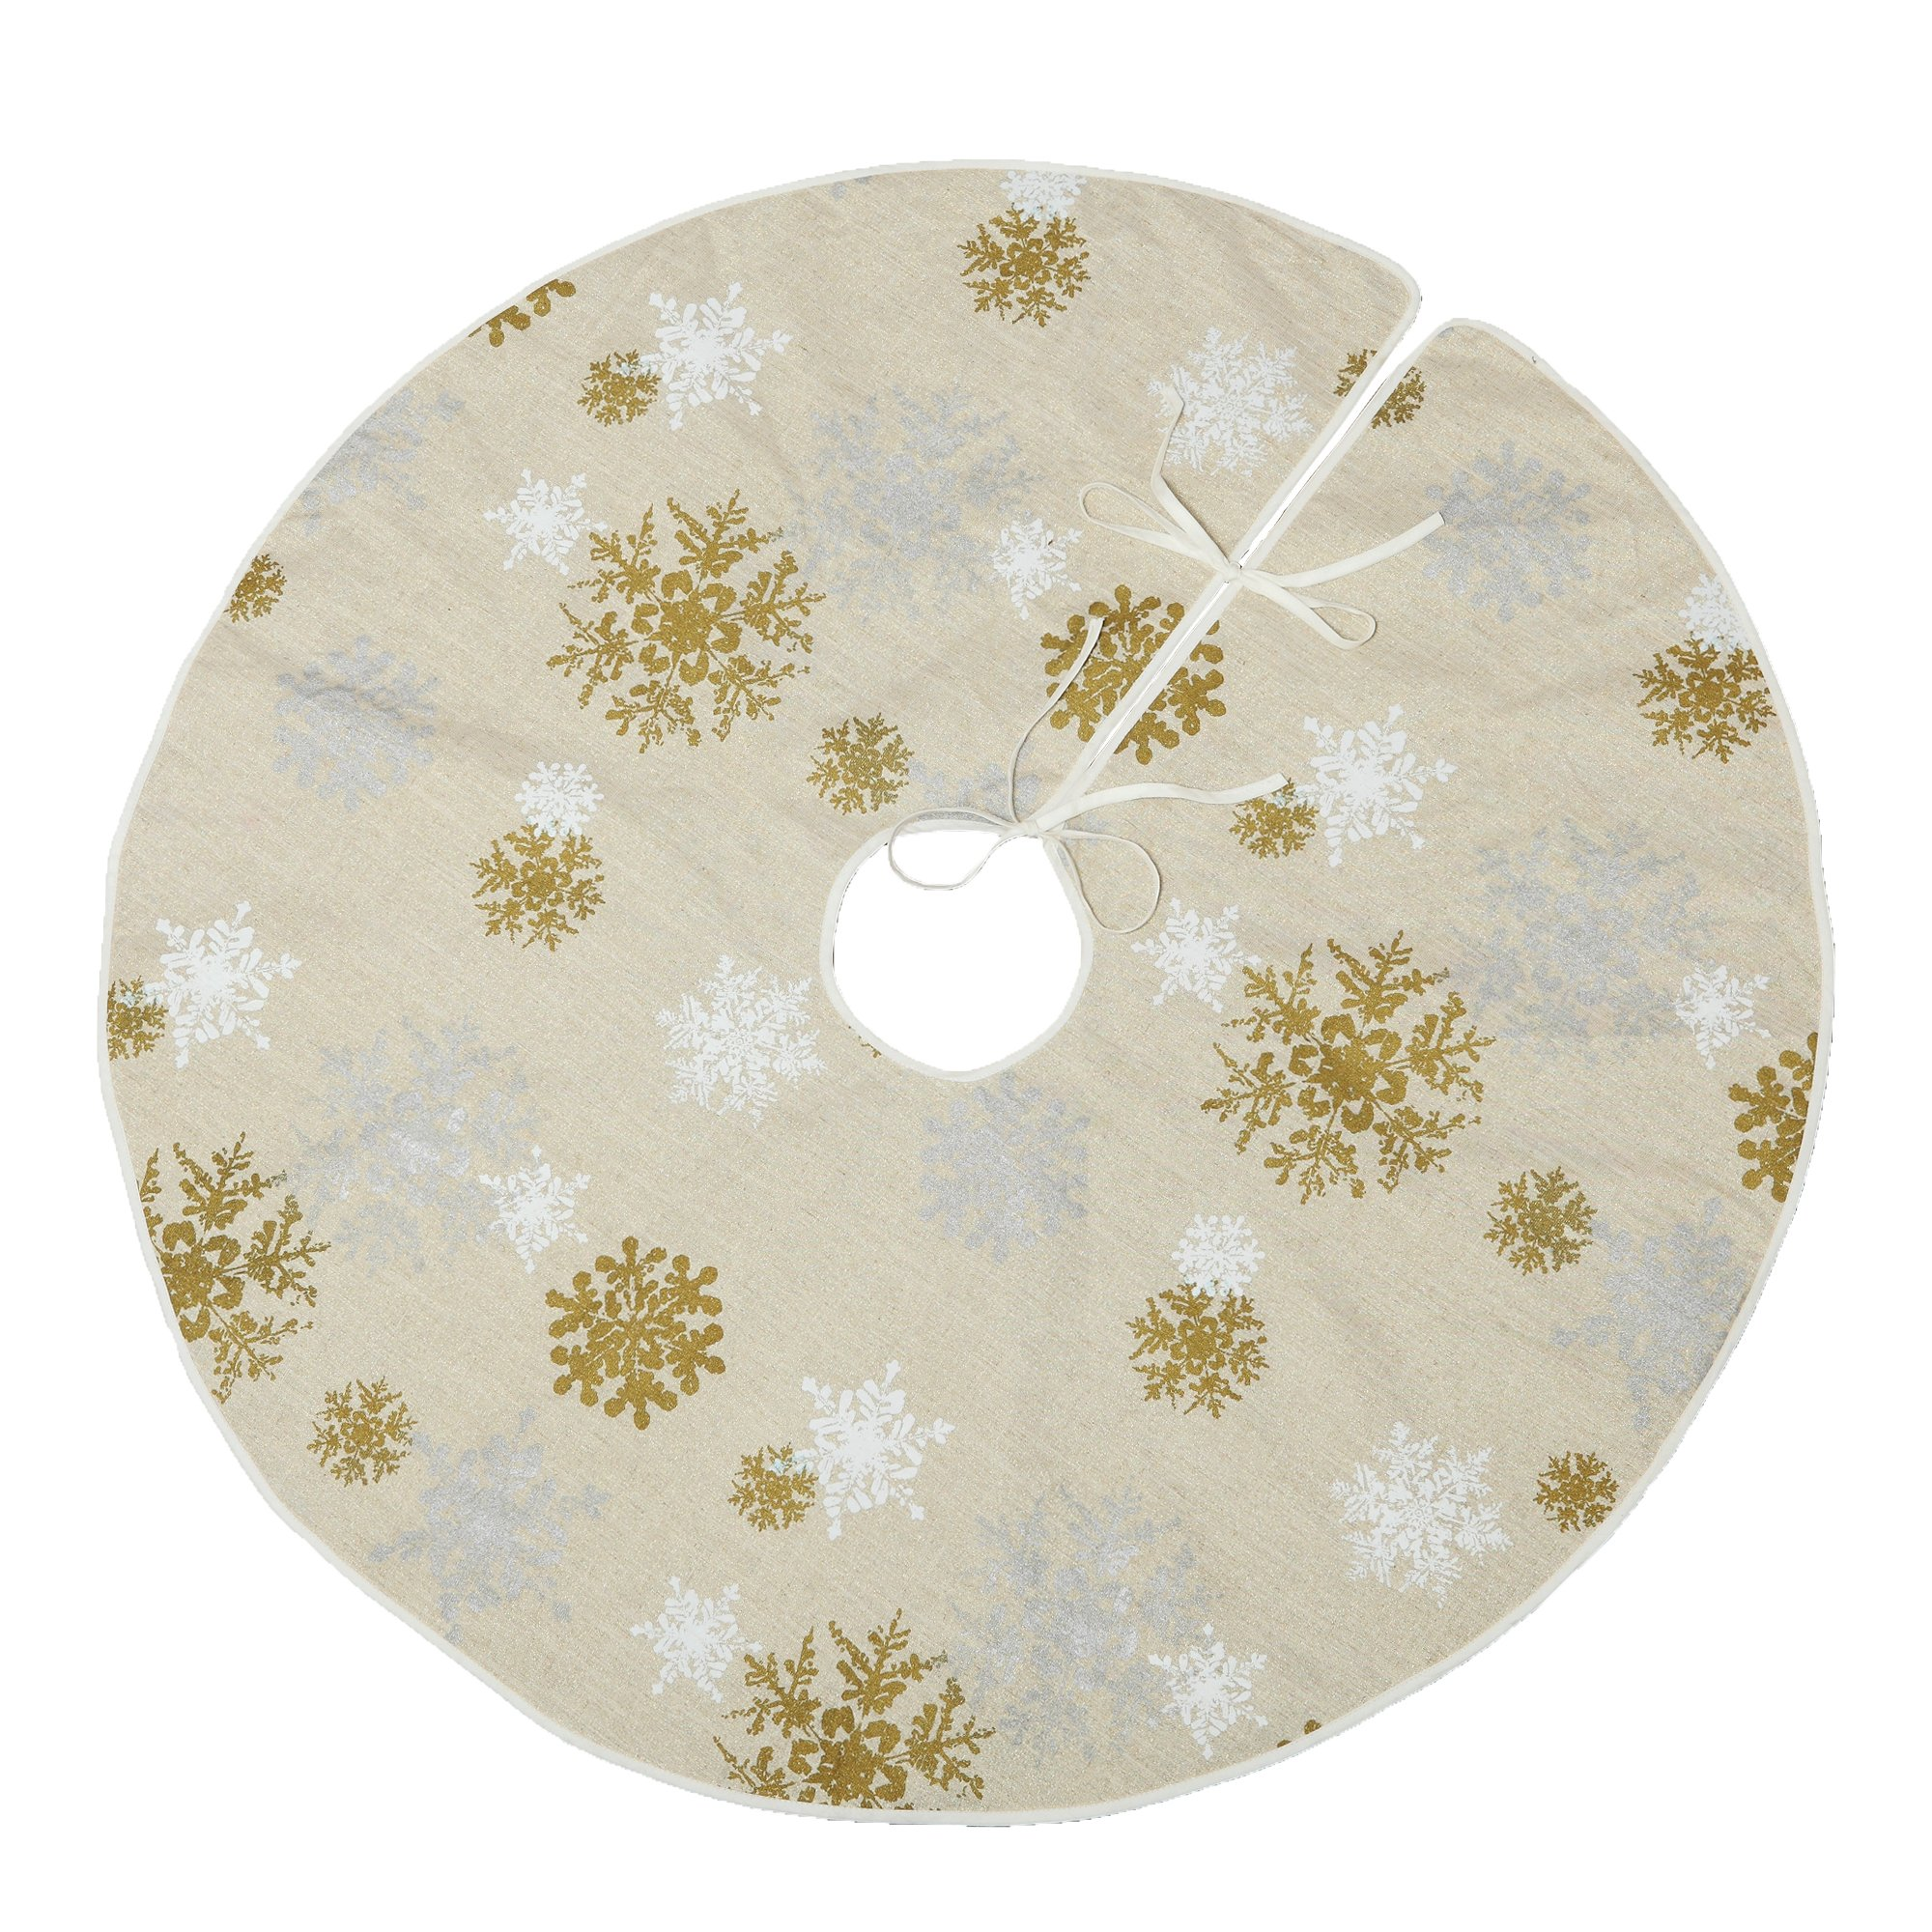 VGIA 50'' Christmas Tree Skirt with Snow Pattern